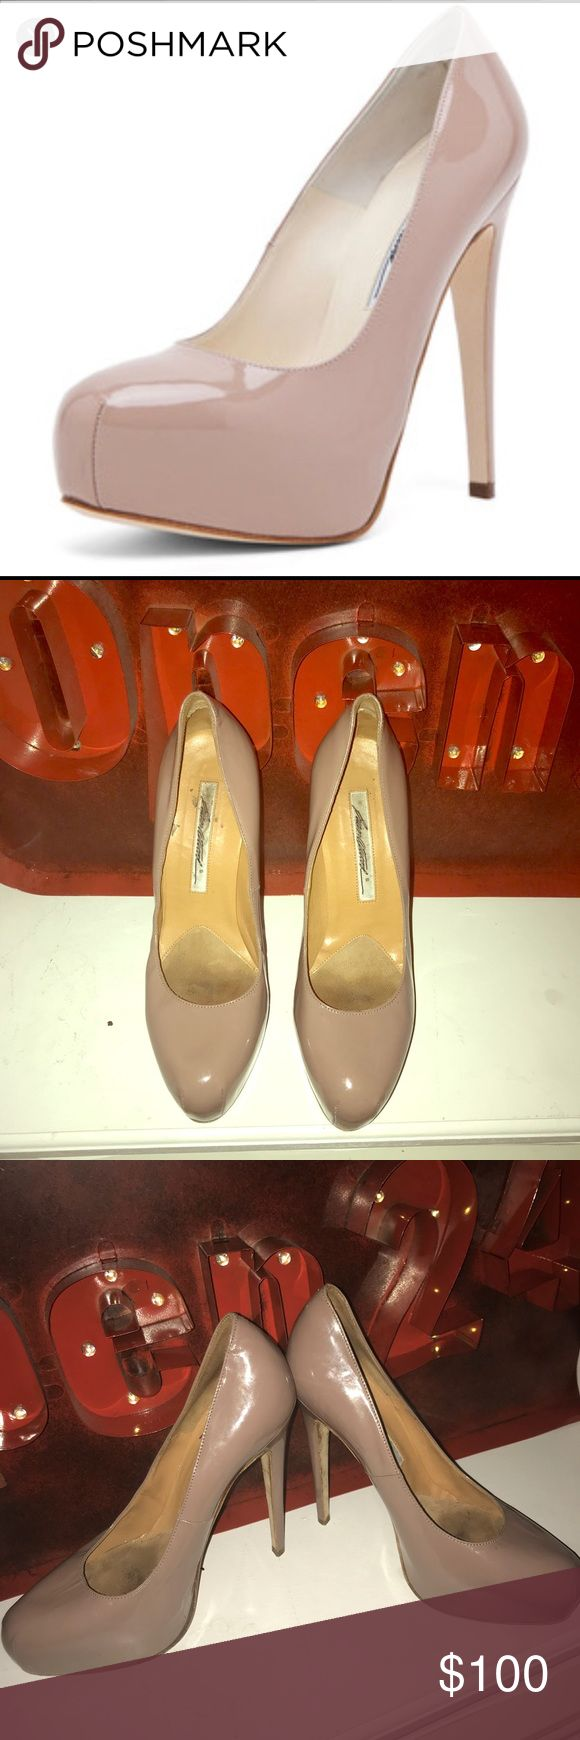 Brian Atwood Manic Nude pumps Pre-owned Brian Atwood Shoes Heels